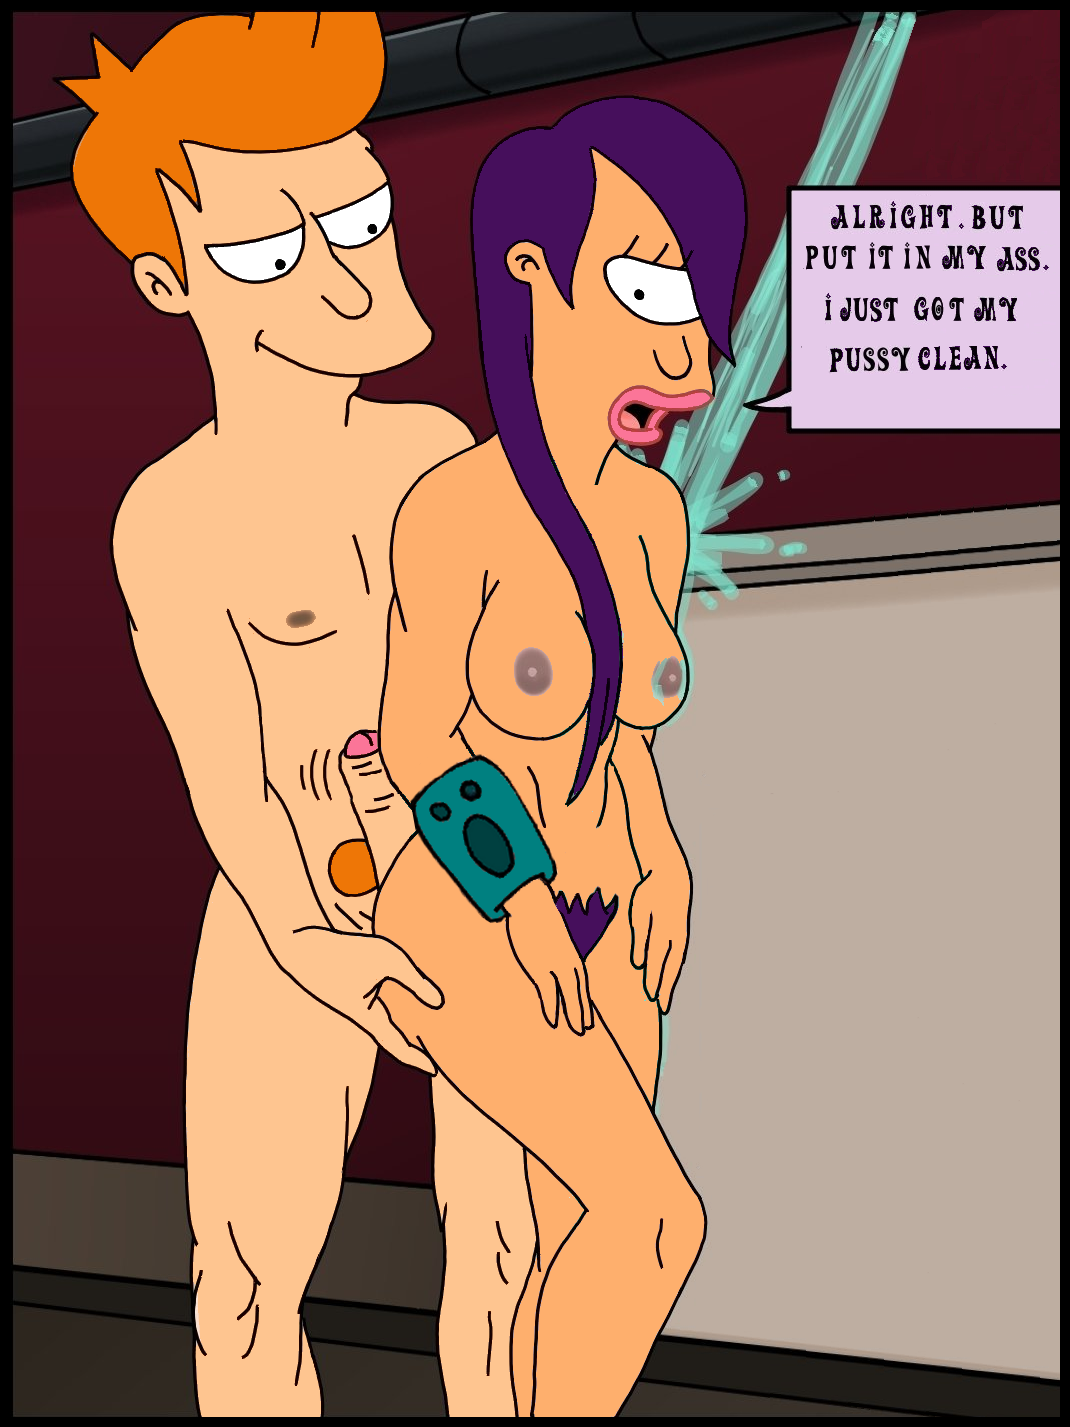 With leela in the shower naked ideal answer